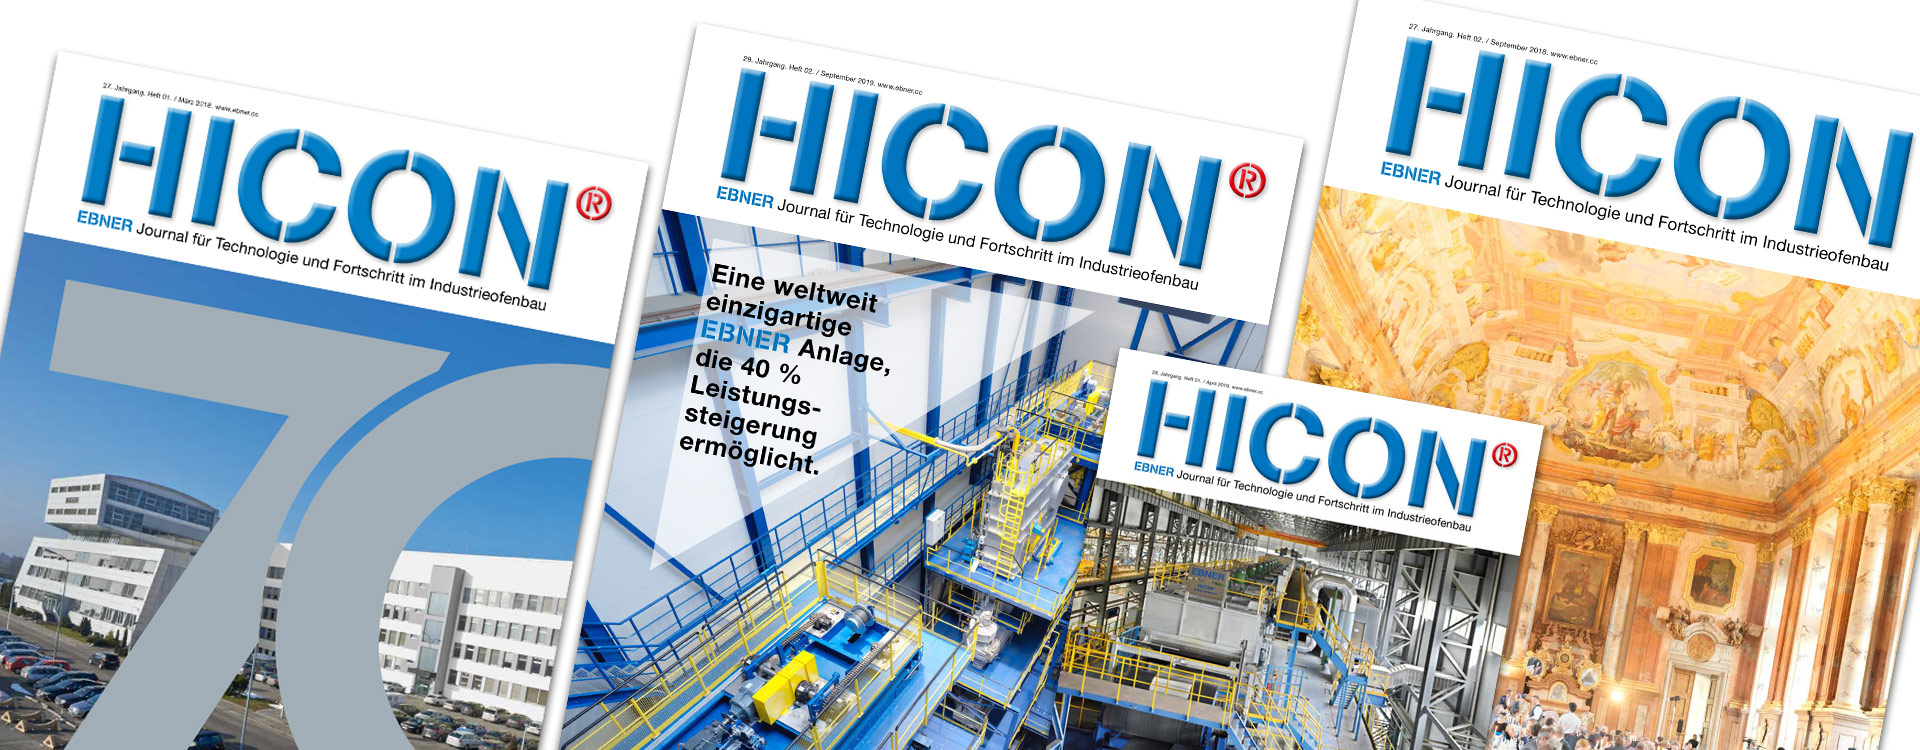 01Hicon-Header-Vorlage-1920x750